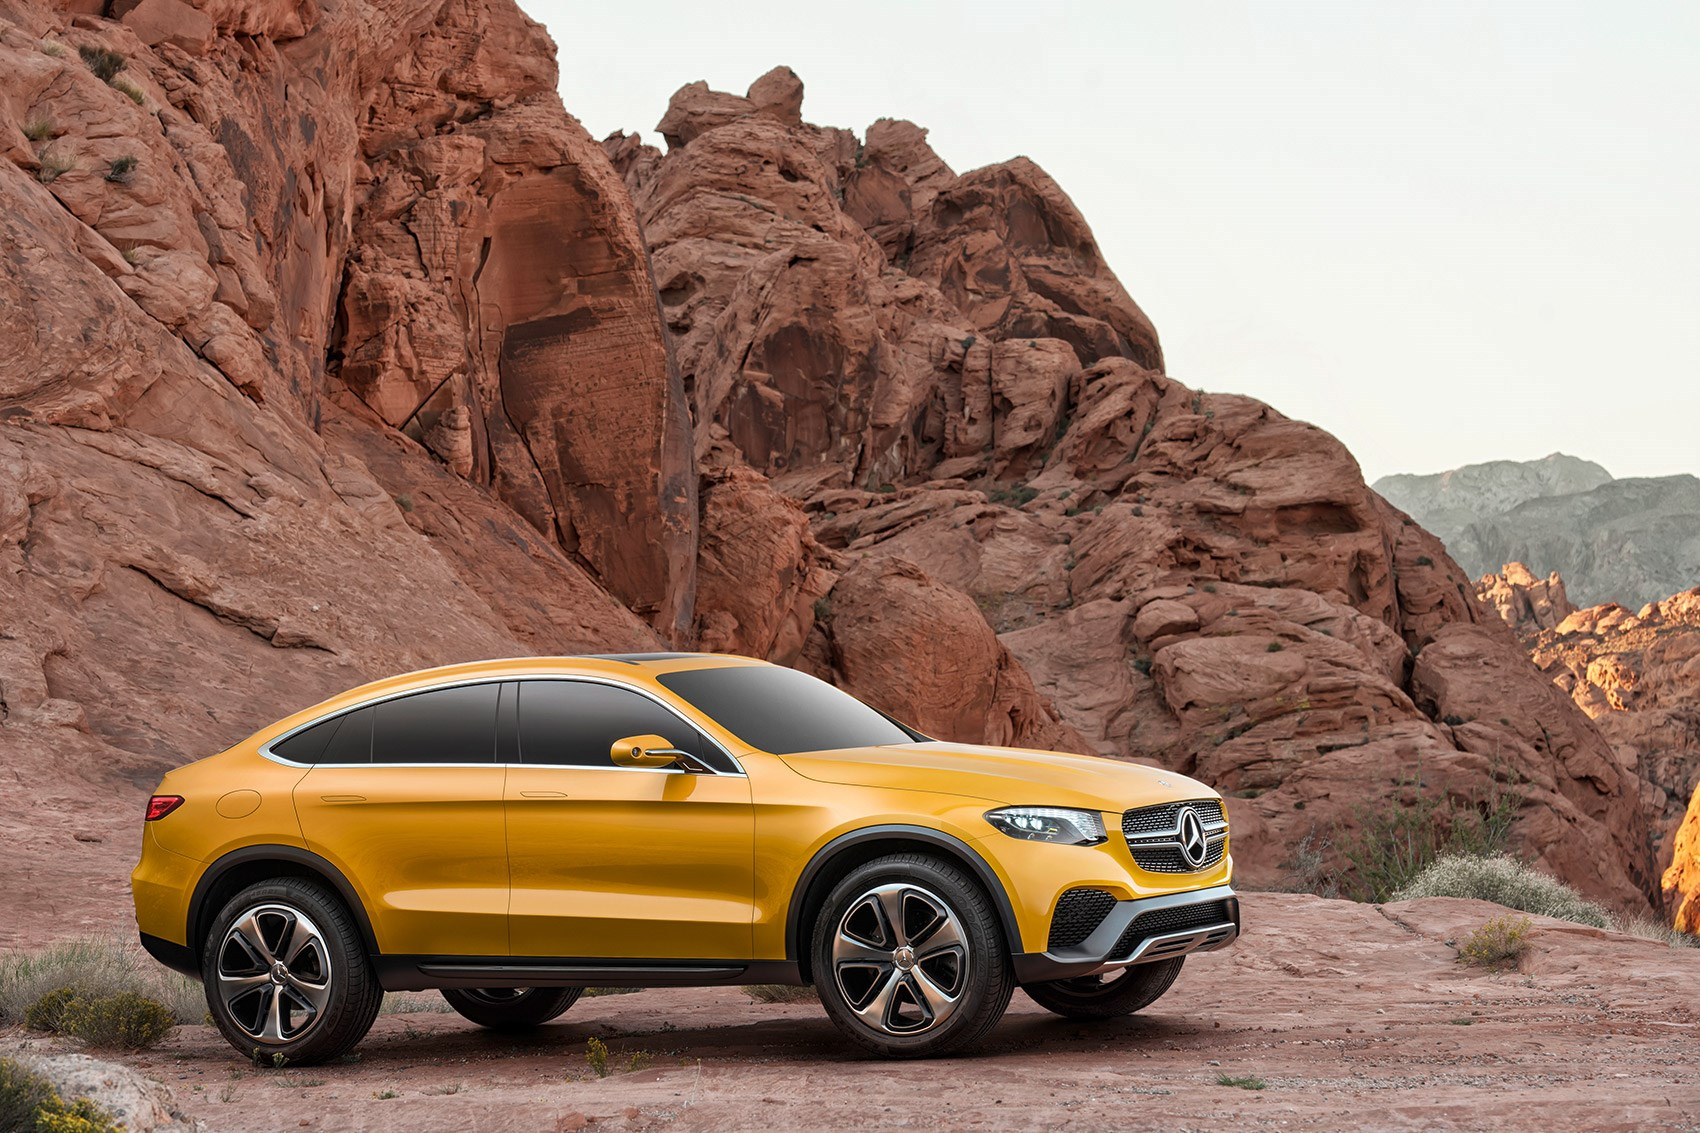 all hail the new 2016 glk mercedes concept glc coupe unveiled at shanghai by car magazine. Black Bedroom Furniture Sets. Home Design Ideas